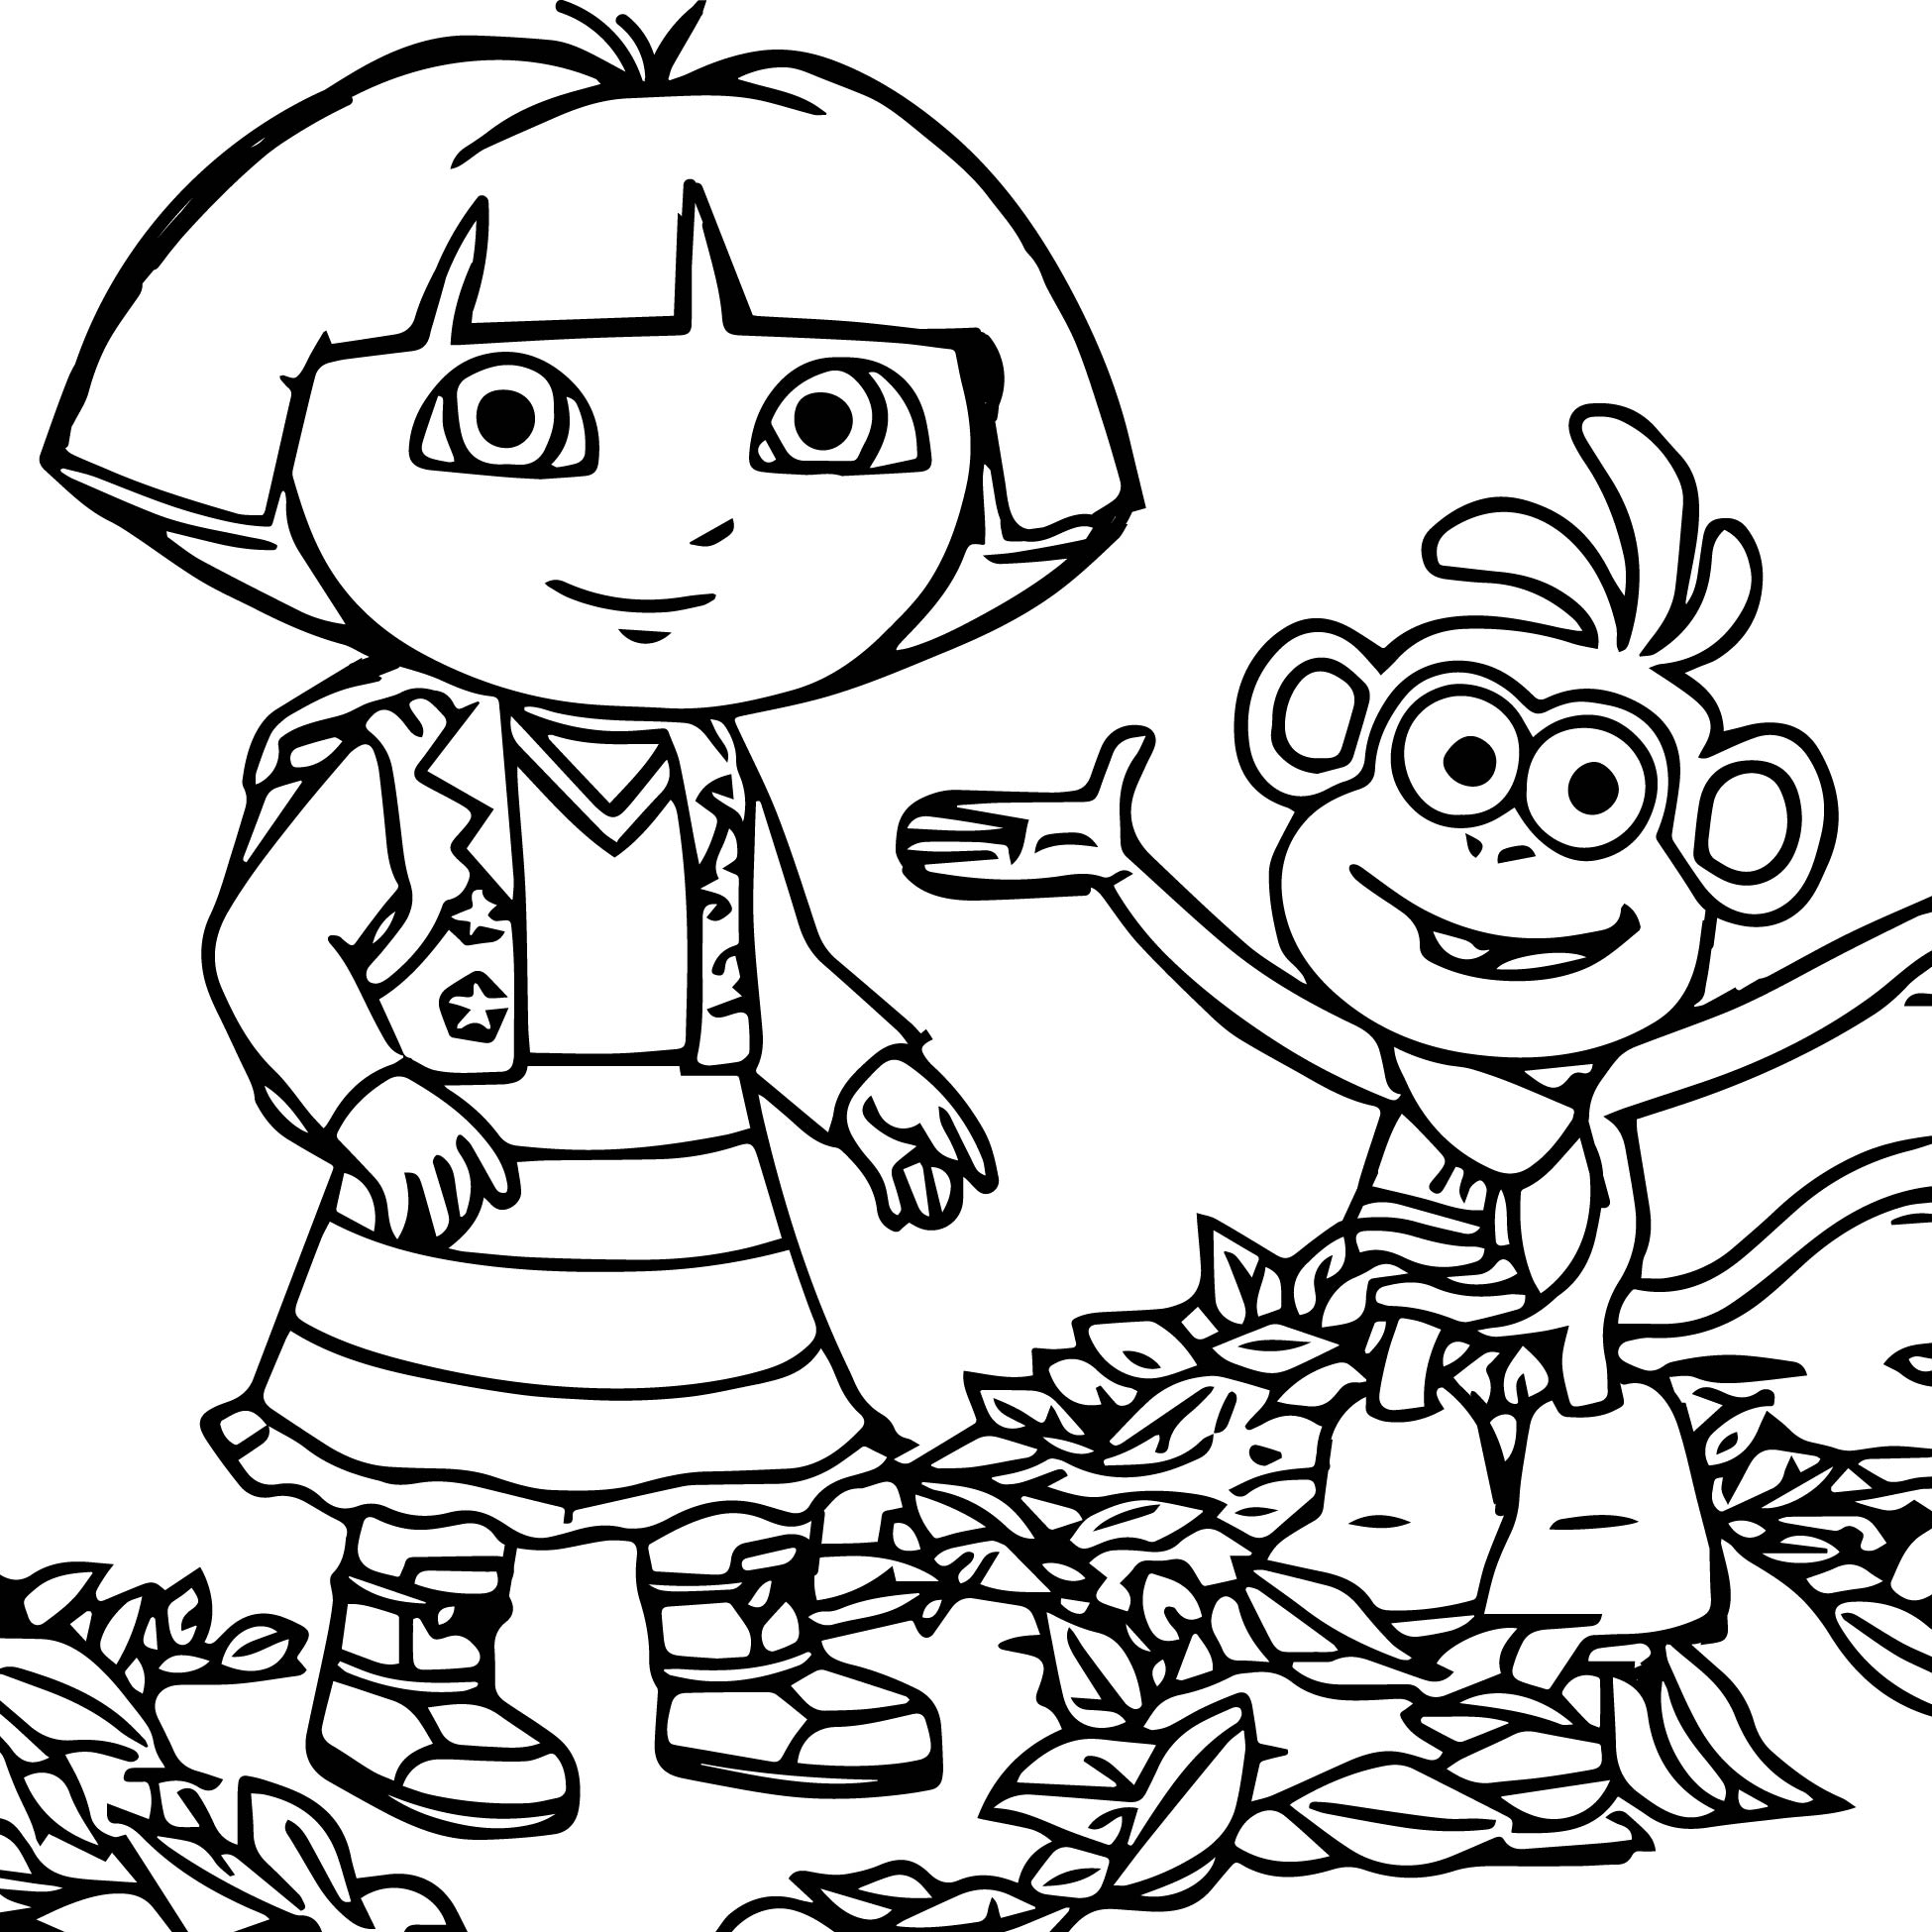 All Together Now Dora The Explorer Doras Standing Up For Friends Coloring Page